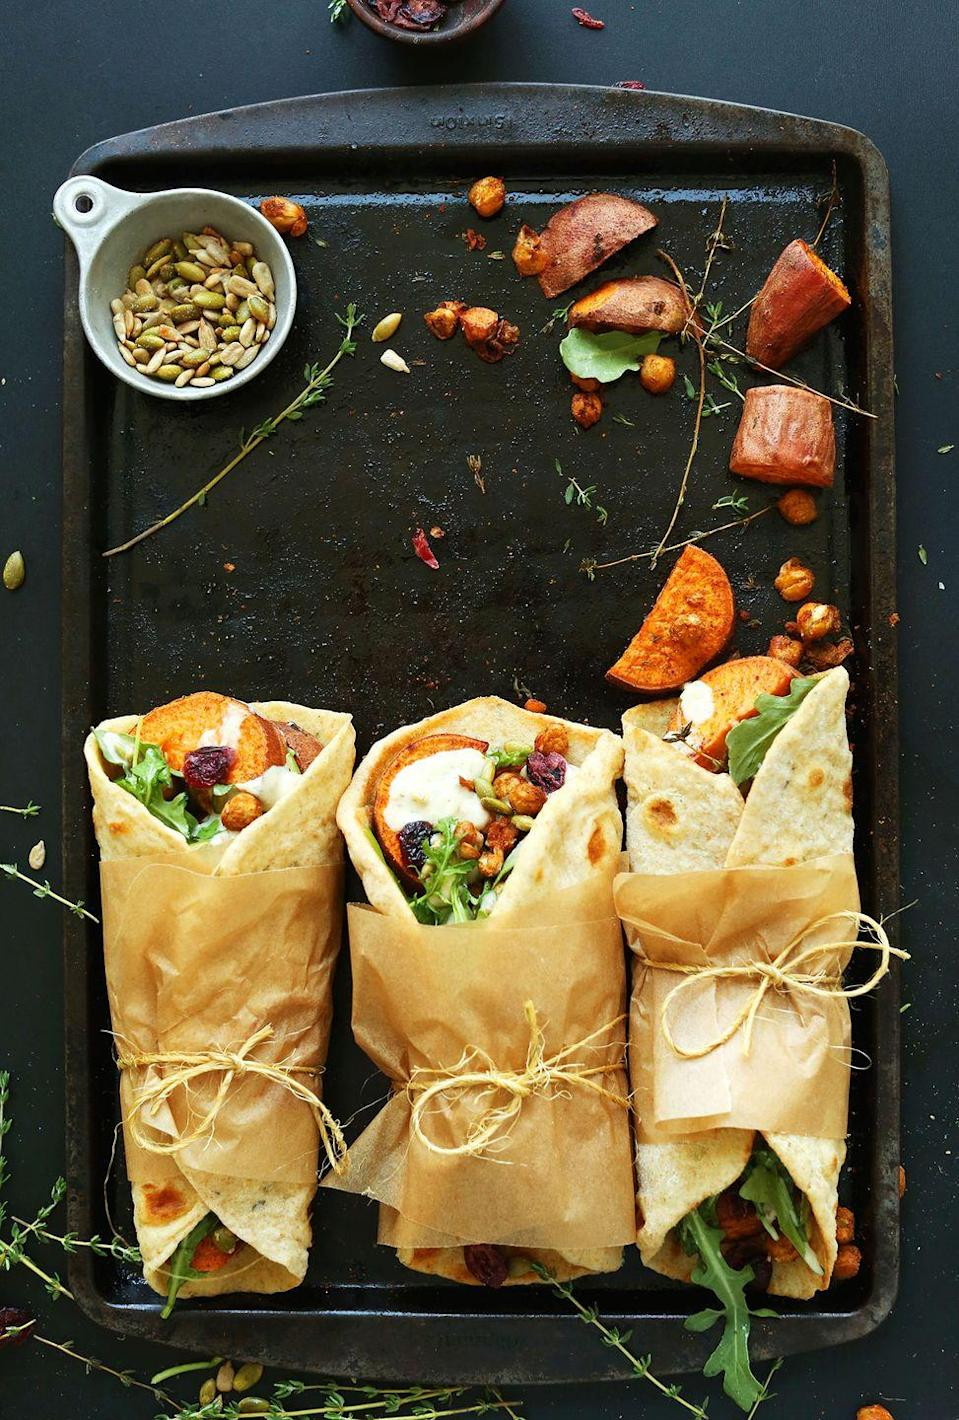 """<p>Everyone at the dinner table will be reaching for one of these wraps. They're filled with cinnamon-roasted <a href=""""https://www.countryliving.com/food-drinks/g877/sweet-potato-recipes-1009/"""" rel=""""nofollow noopener"""" target=""""_blank"""" data-ylk=""""slk:sweet potatoes"""" class=""""link rapid-noclick-resp"""">sweet potatoes</a>, crispy baked chickpeas, and toasted pumpkin seeds all rolled in a garlic herb flatbread. </p><p><strong>Get the recipe at <a href=""""https://minimalistbaker.com/vegan-thanksgiving-wraps/"""" rel=""""nofollow noopener"""" target=""""_blank"""" data-ylk=""""slk:Minimalist Baker"""" class=""""link rapid-noclick-resp"""">Minimalist Baker</a>.</strong> </p>"""